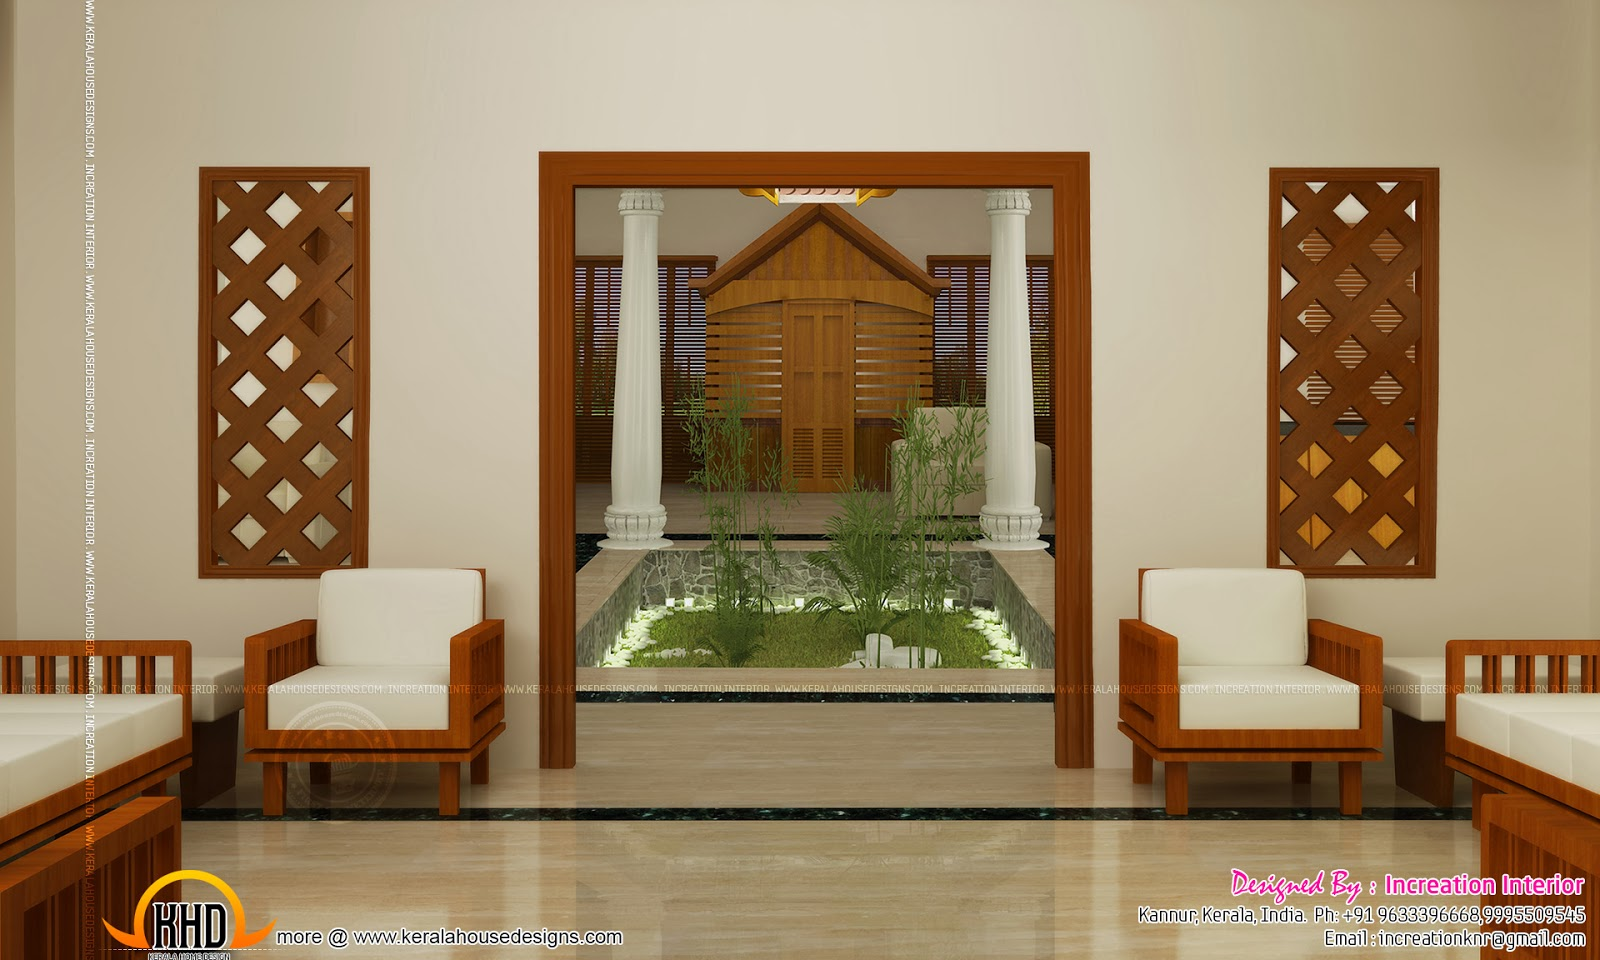 Beautiful home interiors kerala home design and floor plans Beautiful interior home designs